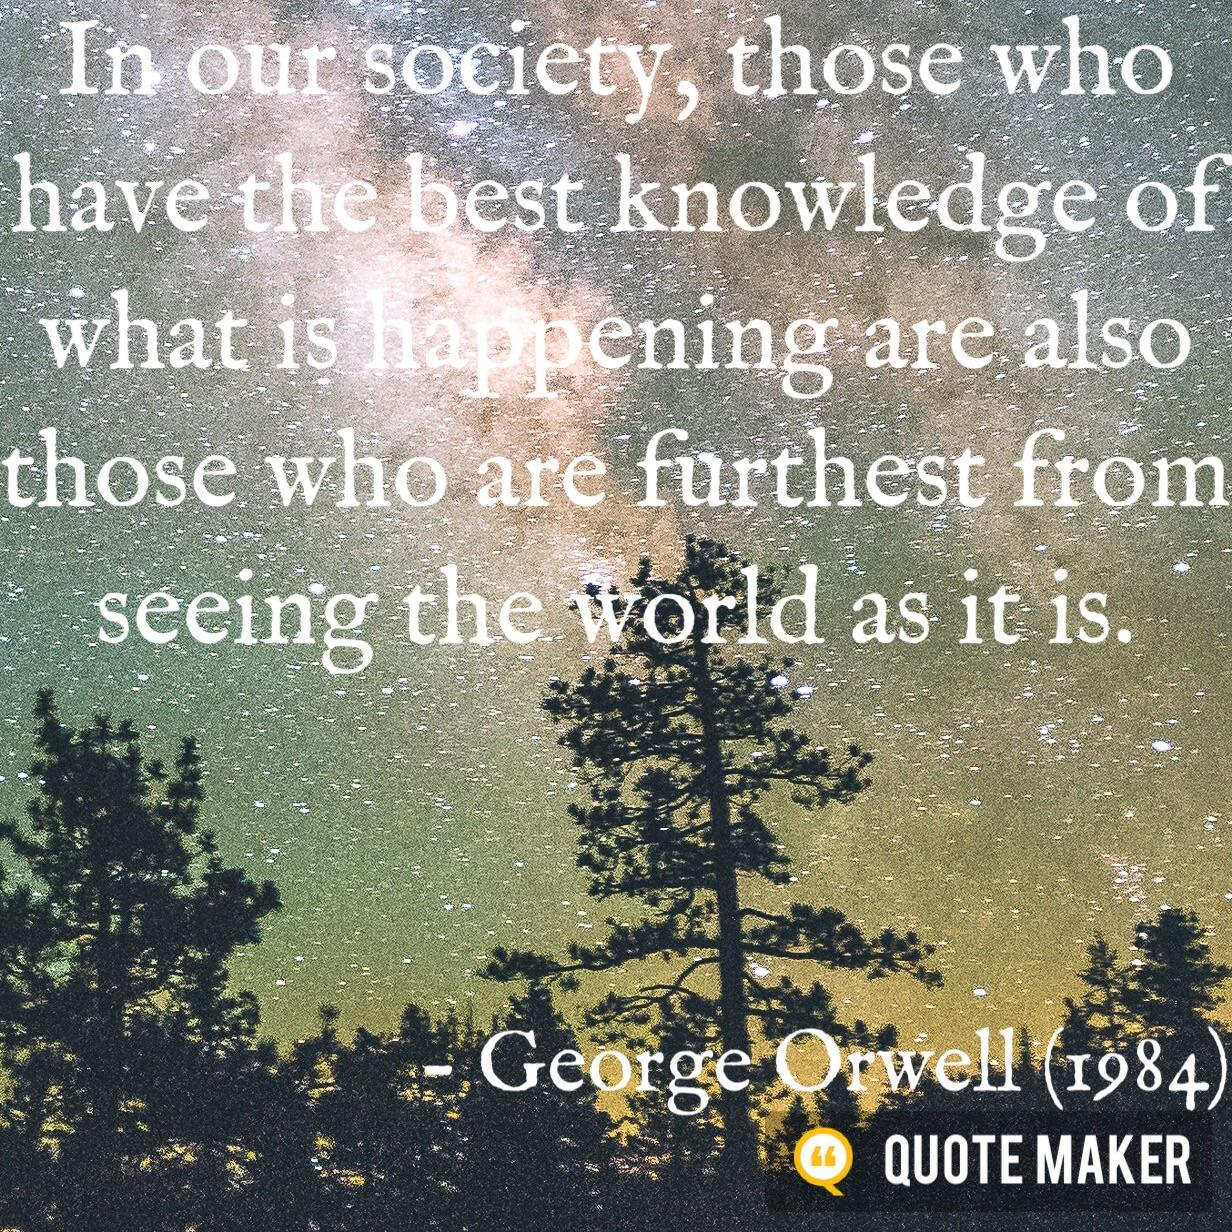 In our society, those who have the best knowledge of what is happening are also those who are furthest from seeing the world as it is. – George Orwell (1984) [1232×1232]